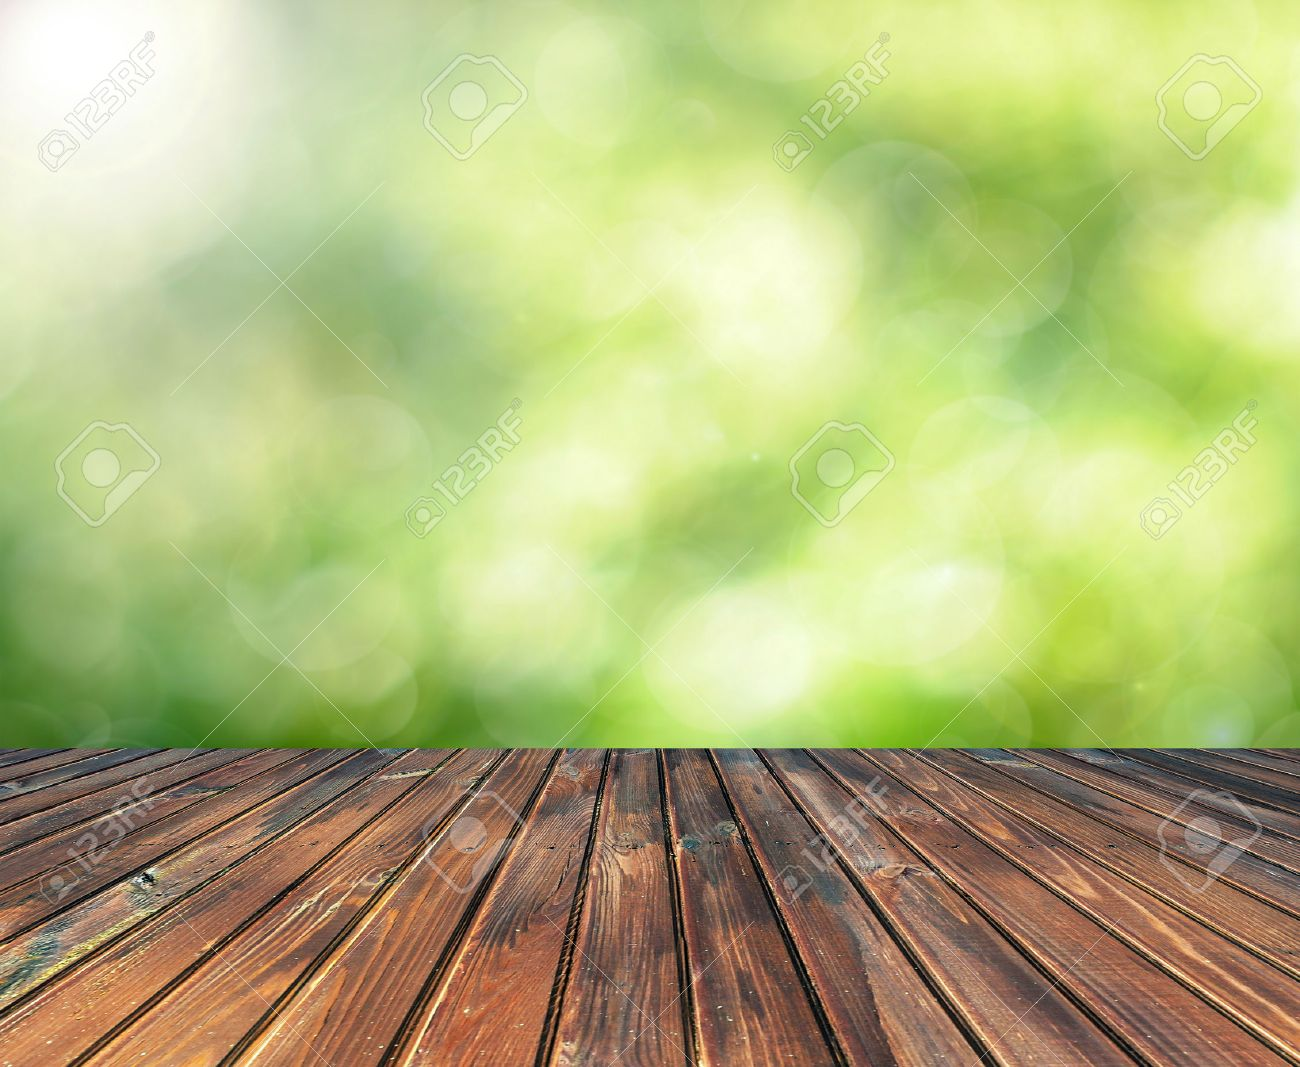 Wood table background hd - Wooden Table With Space For Your Photo Montage And Green Color Of Background Stock Photo